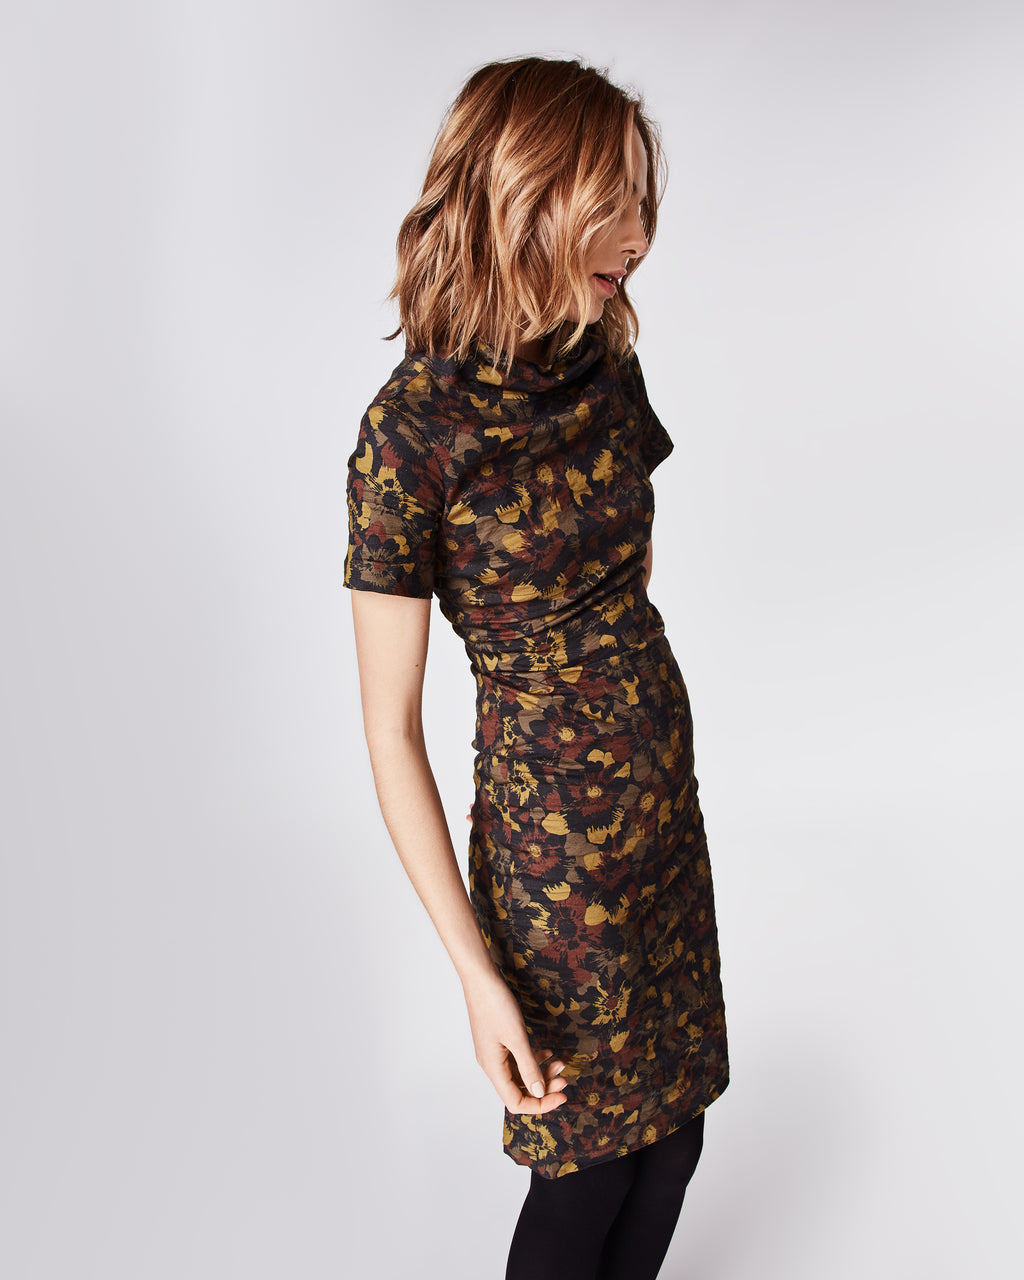 CD10071 - FLOWER CAMO HIGH NECK DRESS - dresses - short - In our famous cotton metal, this fitted midi dressfeatures a mock neck and concealed zipper for closure. Fully lined.